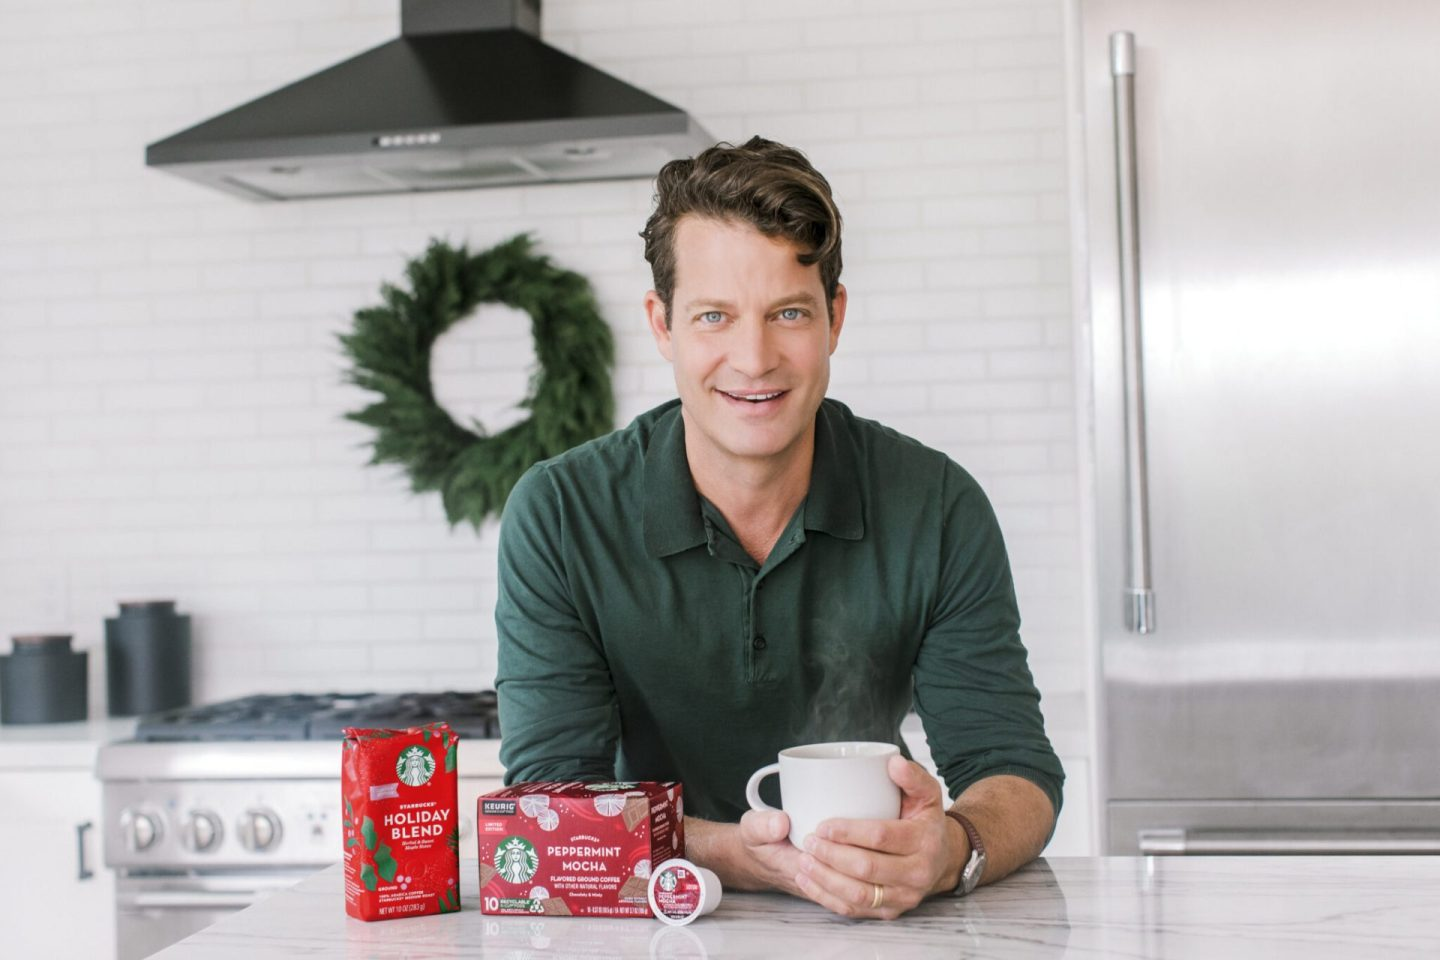 Starbucks Teams with Nate Berkus for Holiday at-home Portrait Series